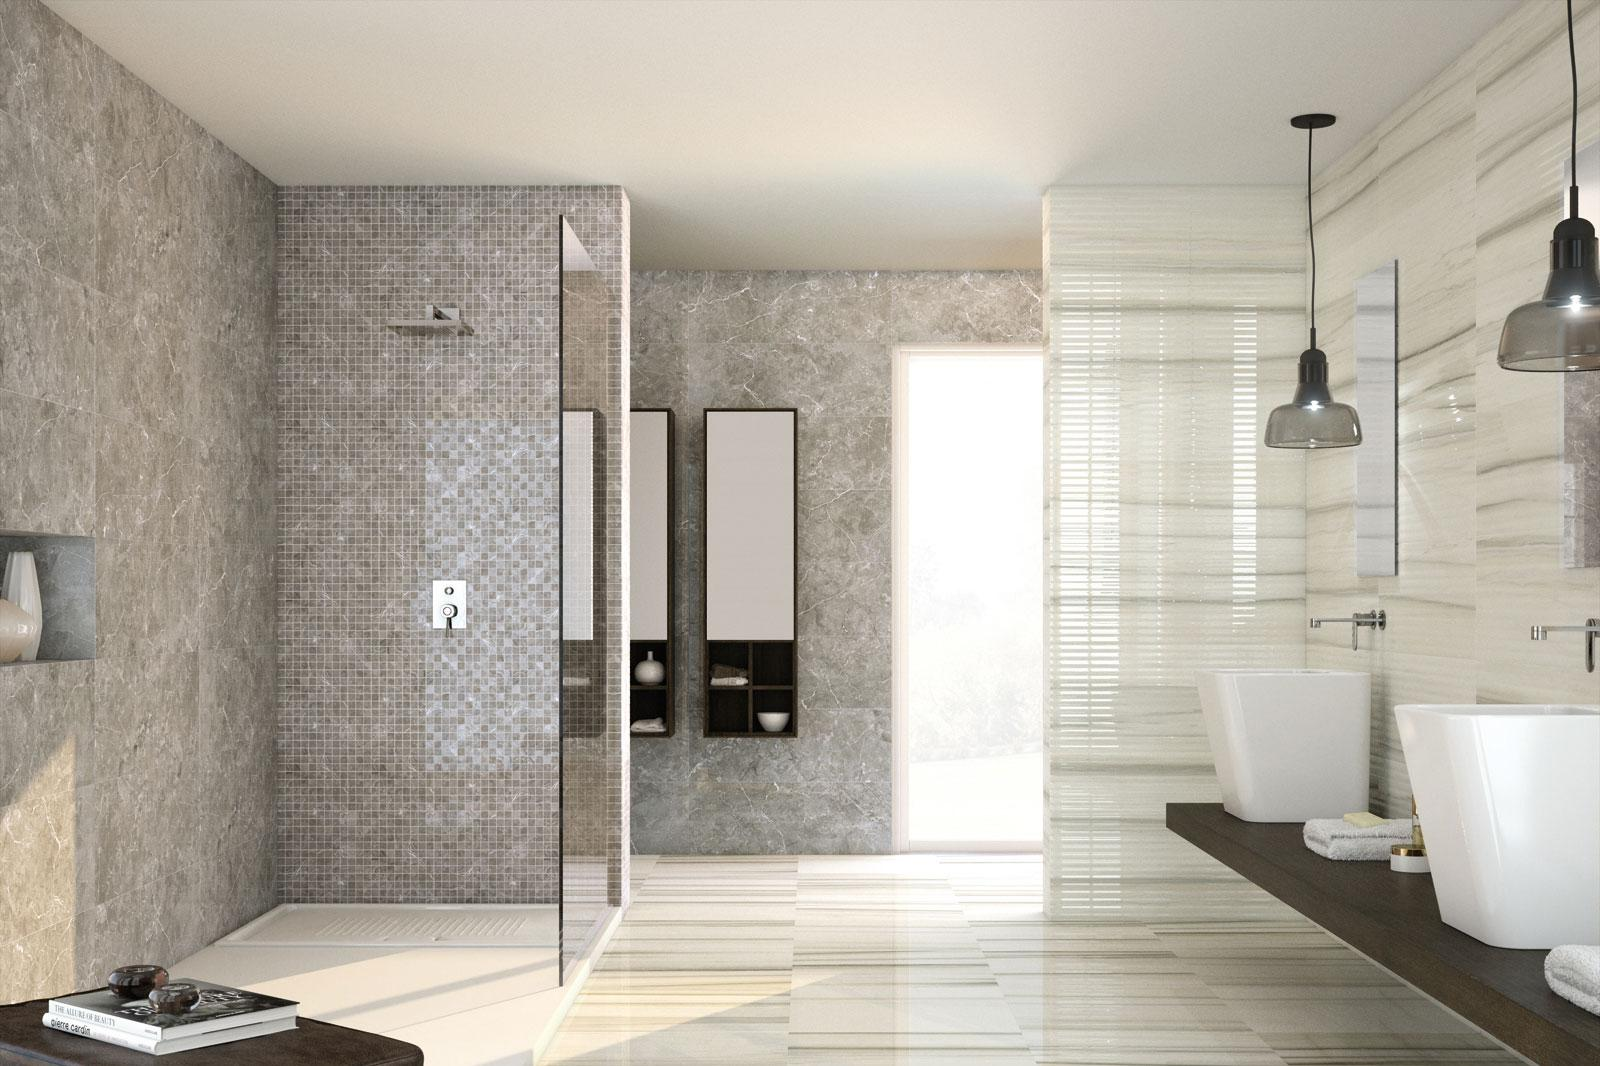 dakom international marazzi keramika